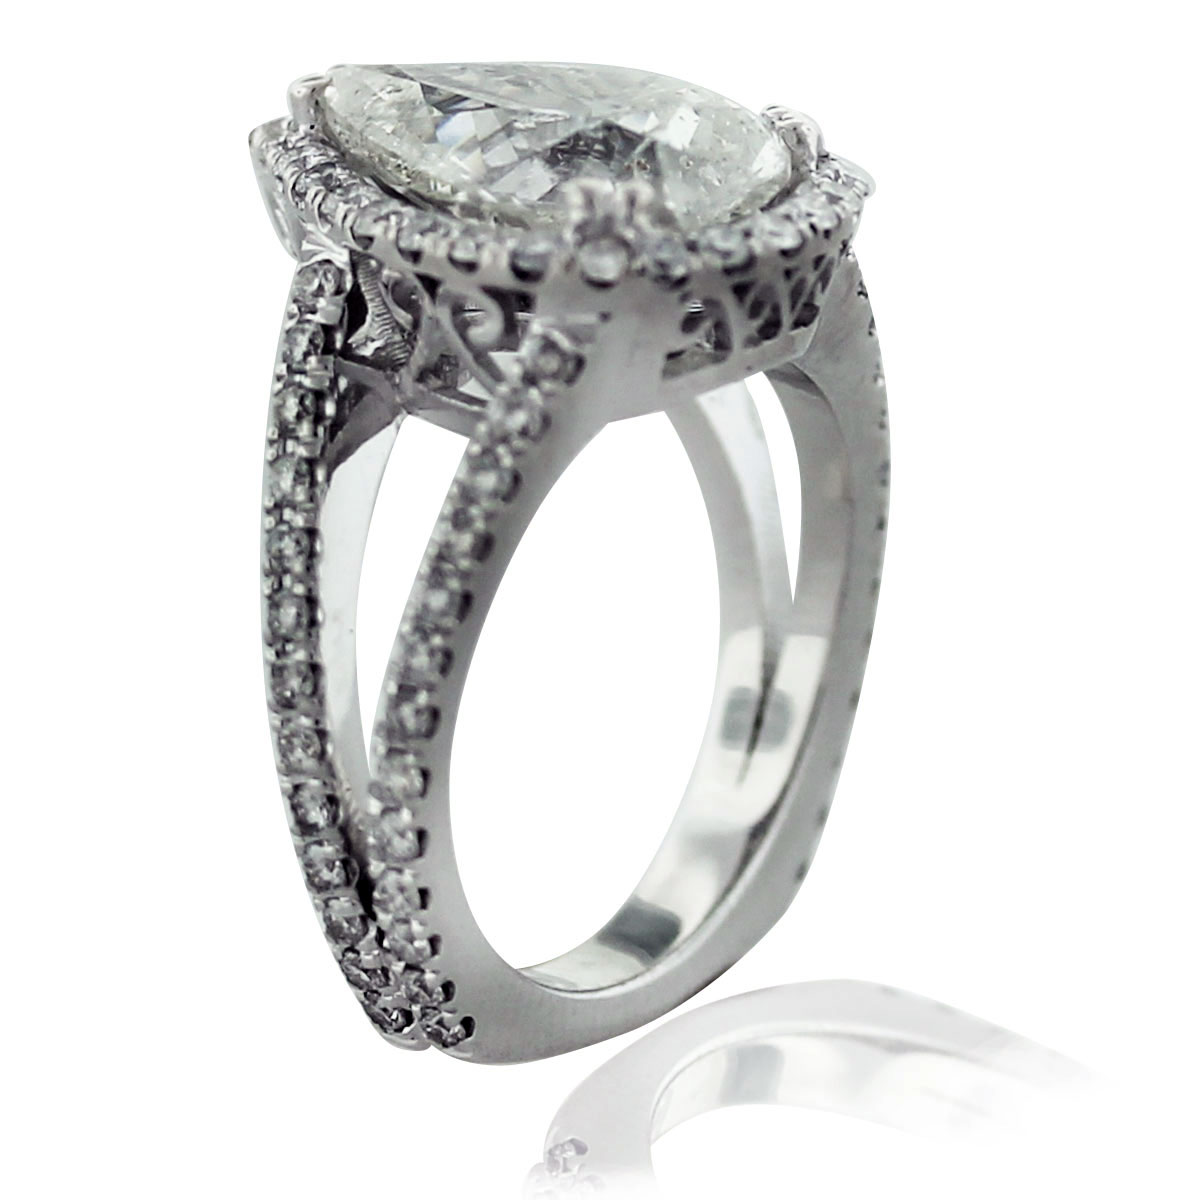 18k White Gold Micro Pave 4.58ct Pear Shaped Diamond Engagement Ring Boca Raton